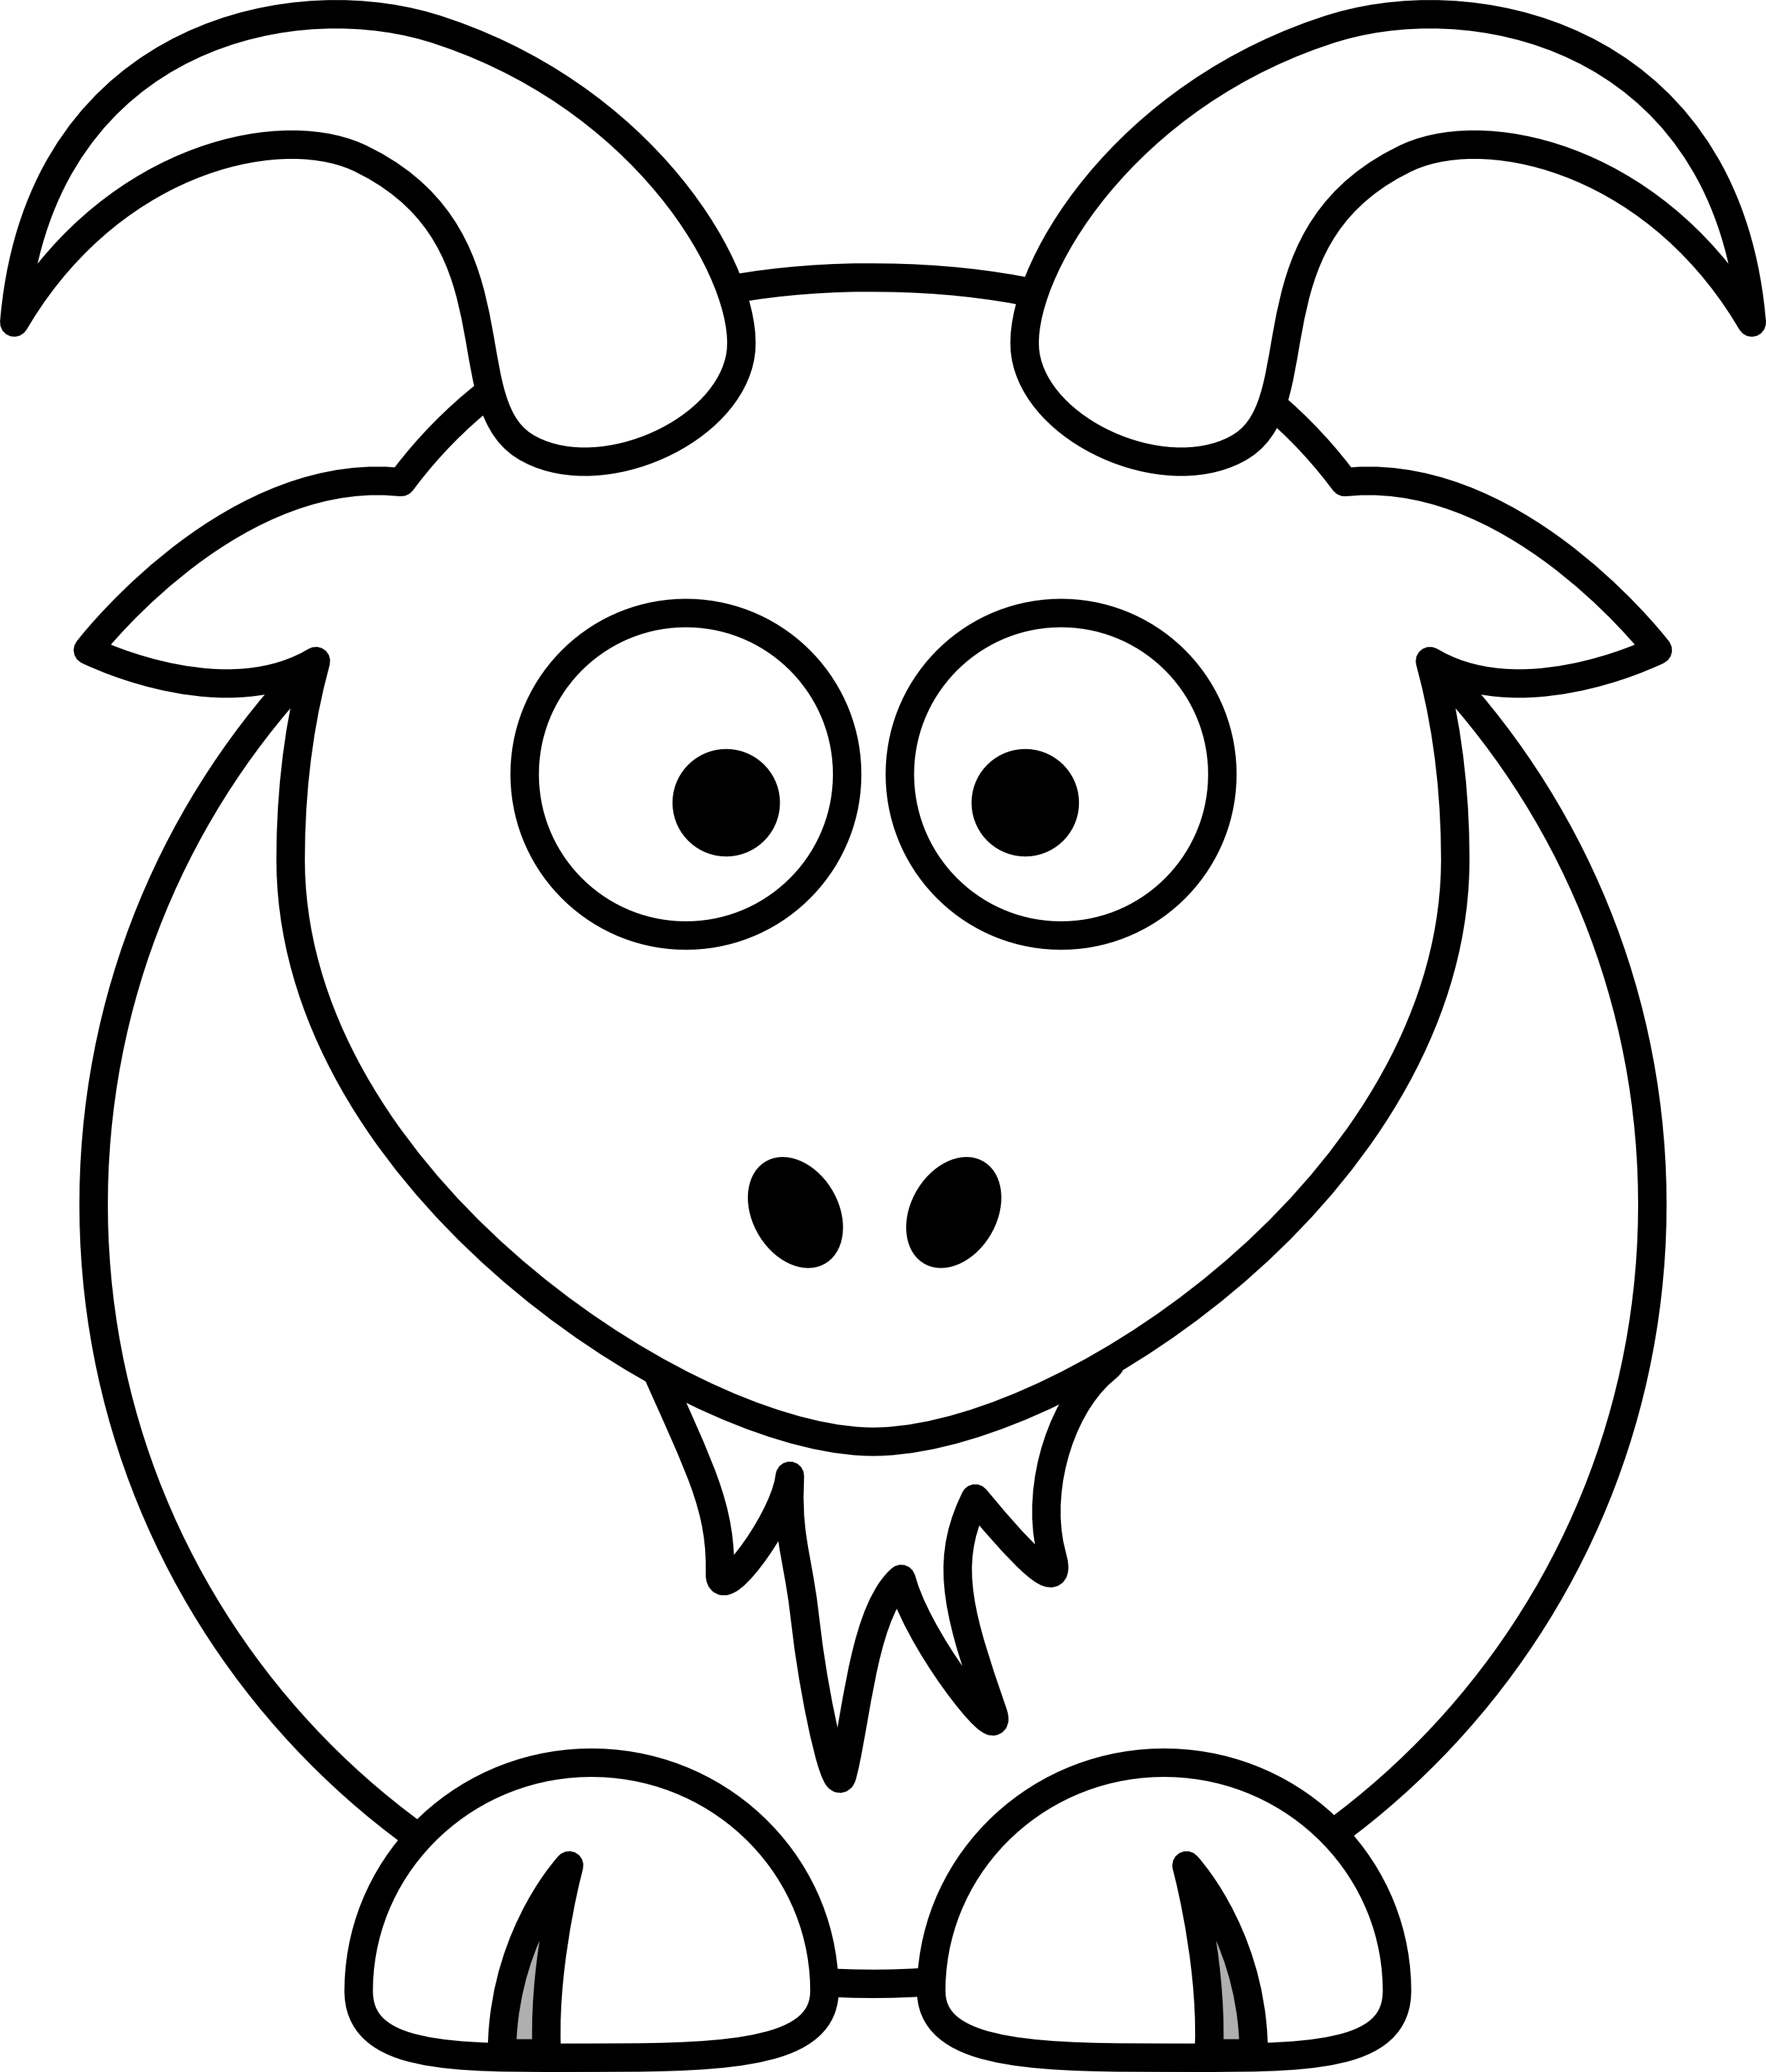 2555x2998 Billy Goat Clipart Black And White